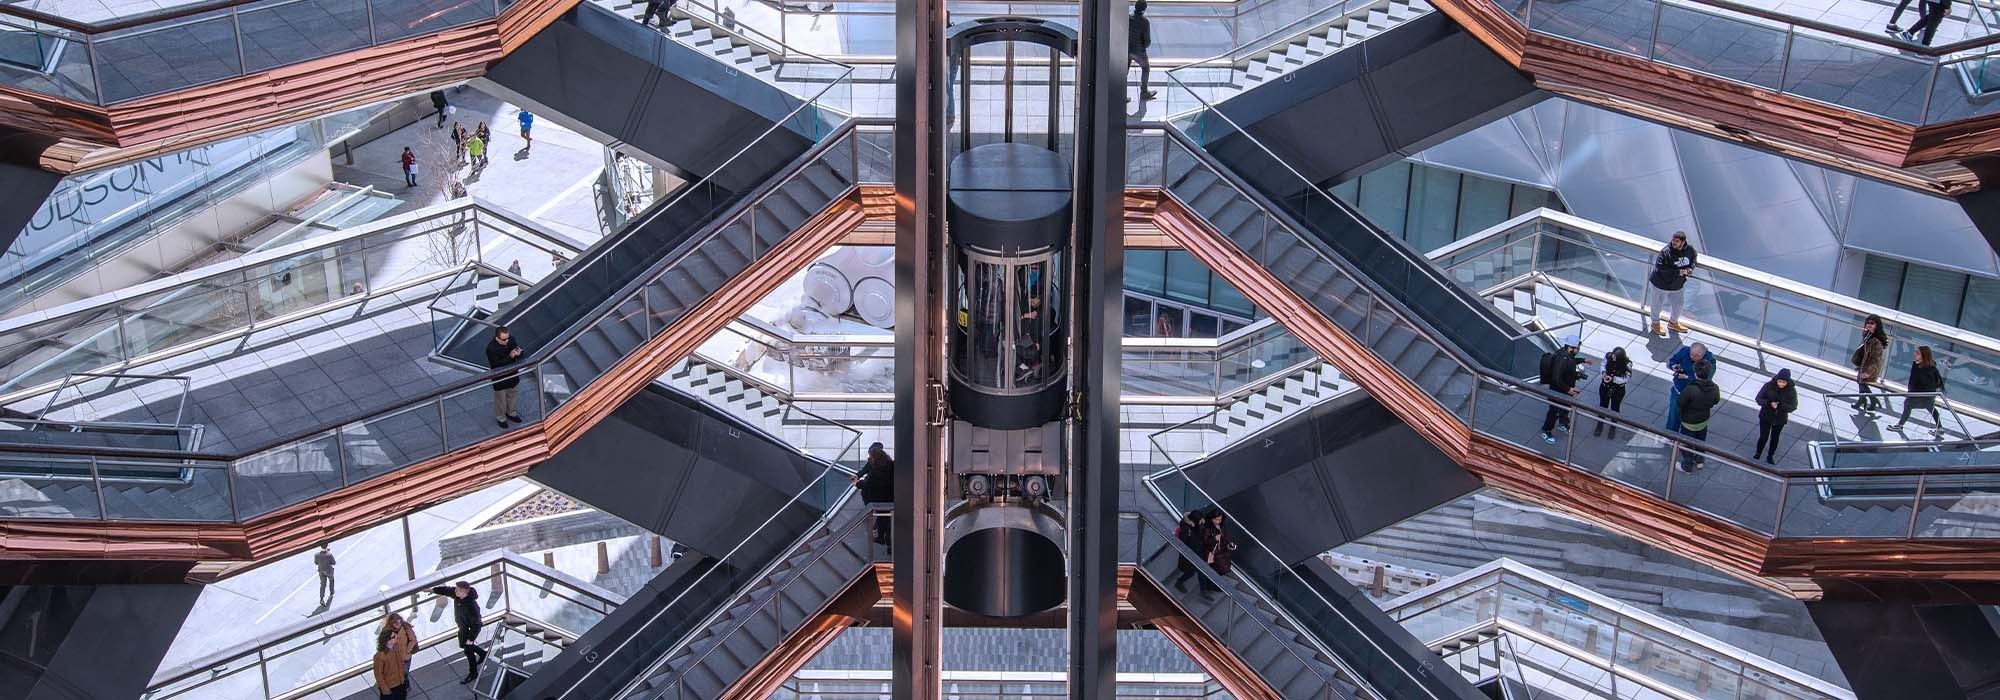 The elevator in the Vessel at Hudson Yards New York City